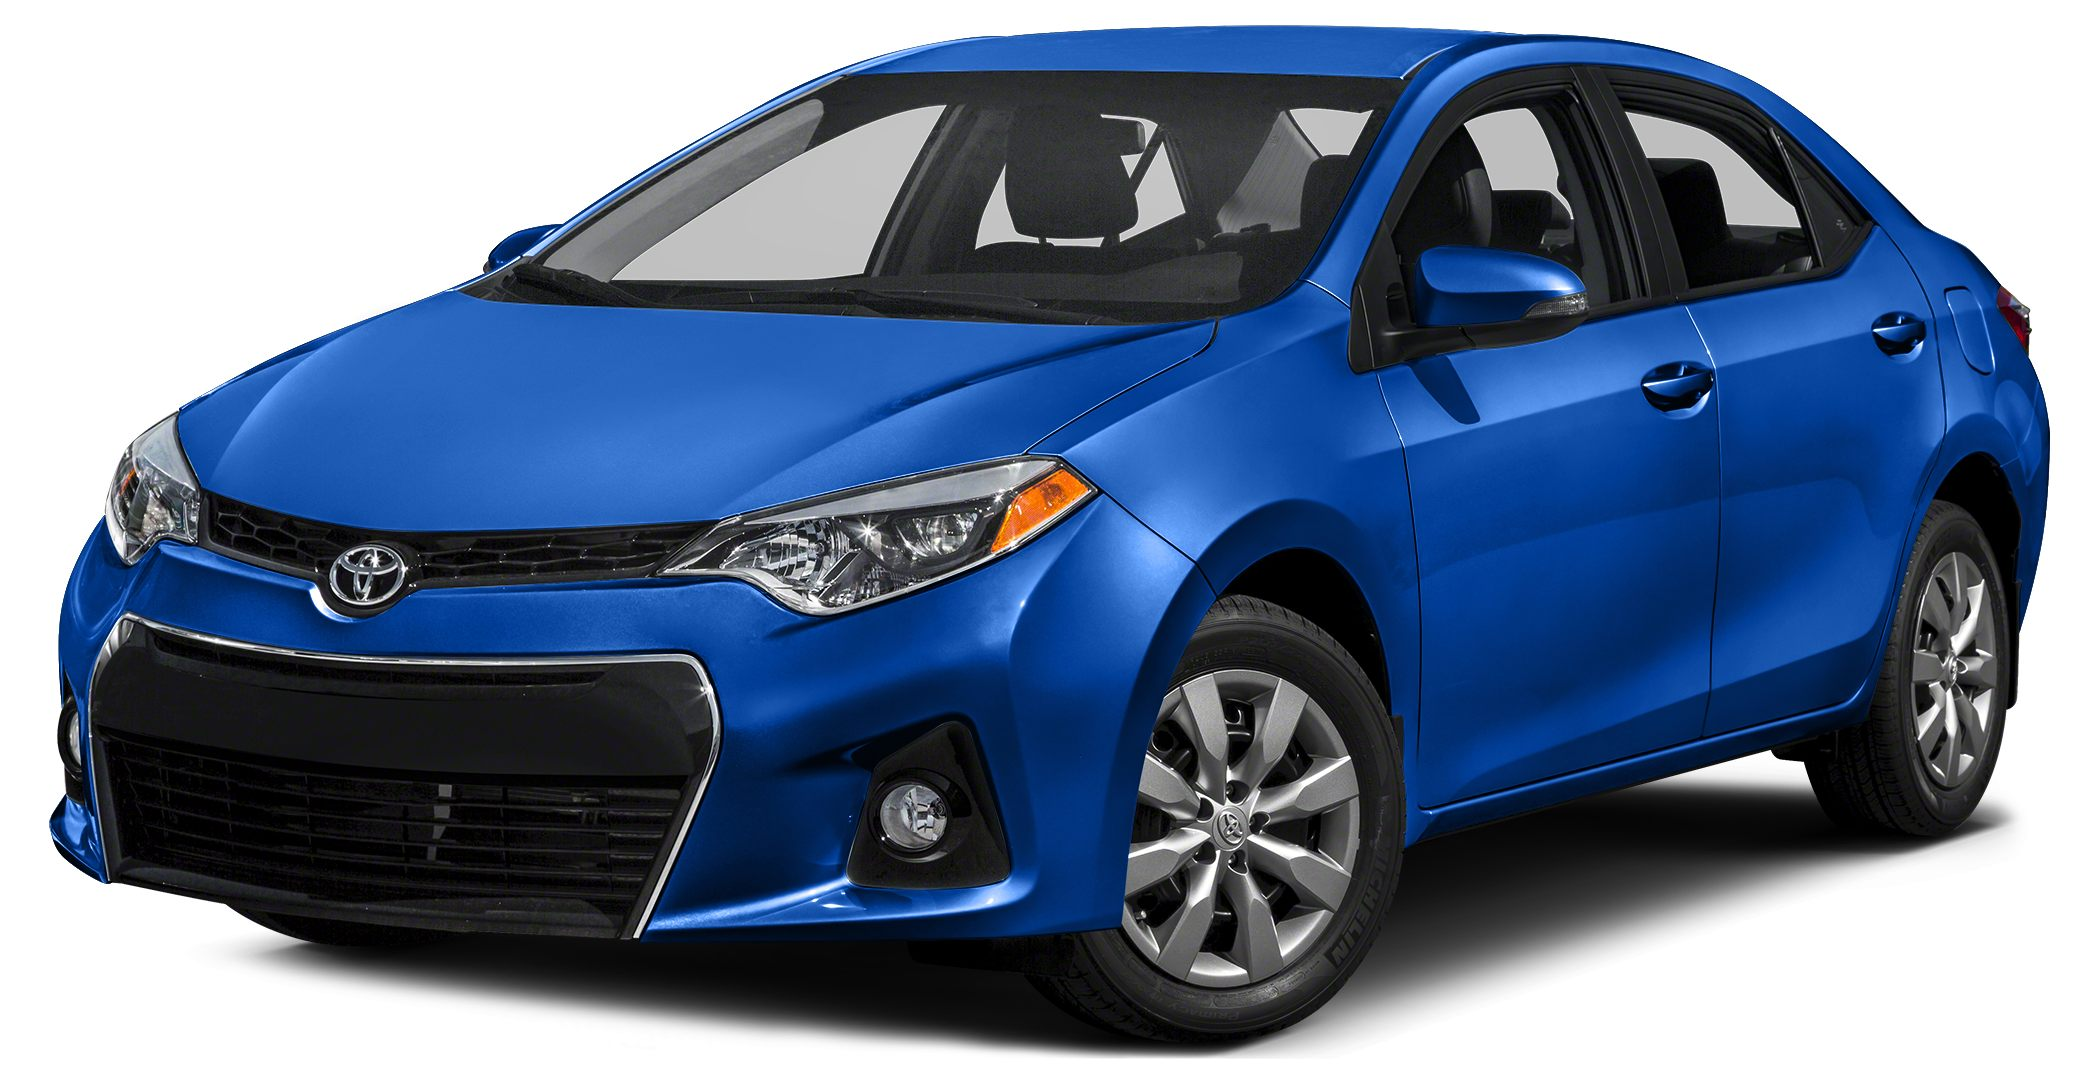 2016 Toyota Corolla S Plus Moonroof Bluetooth CD Player S PLUS PACKAGE BODY PROTECTION PACKAGE